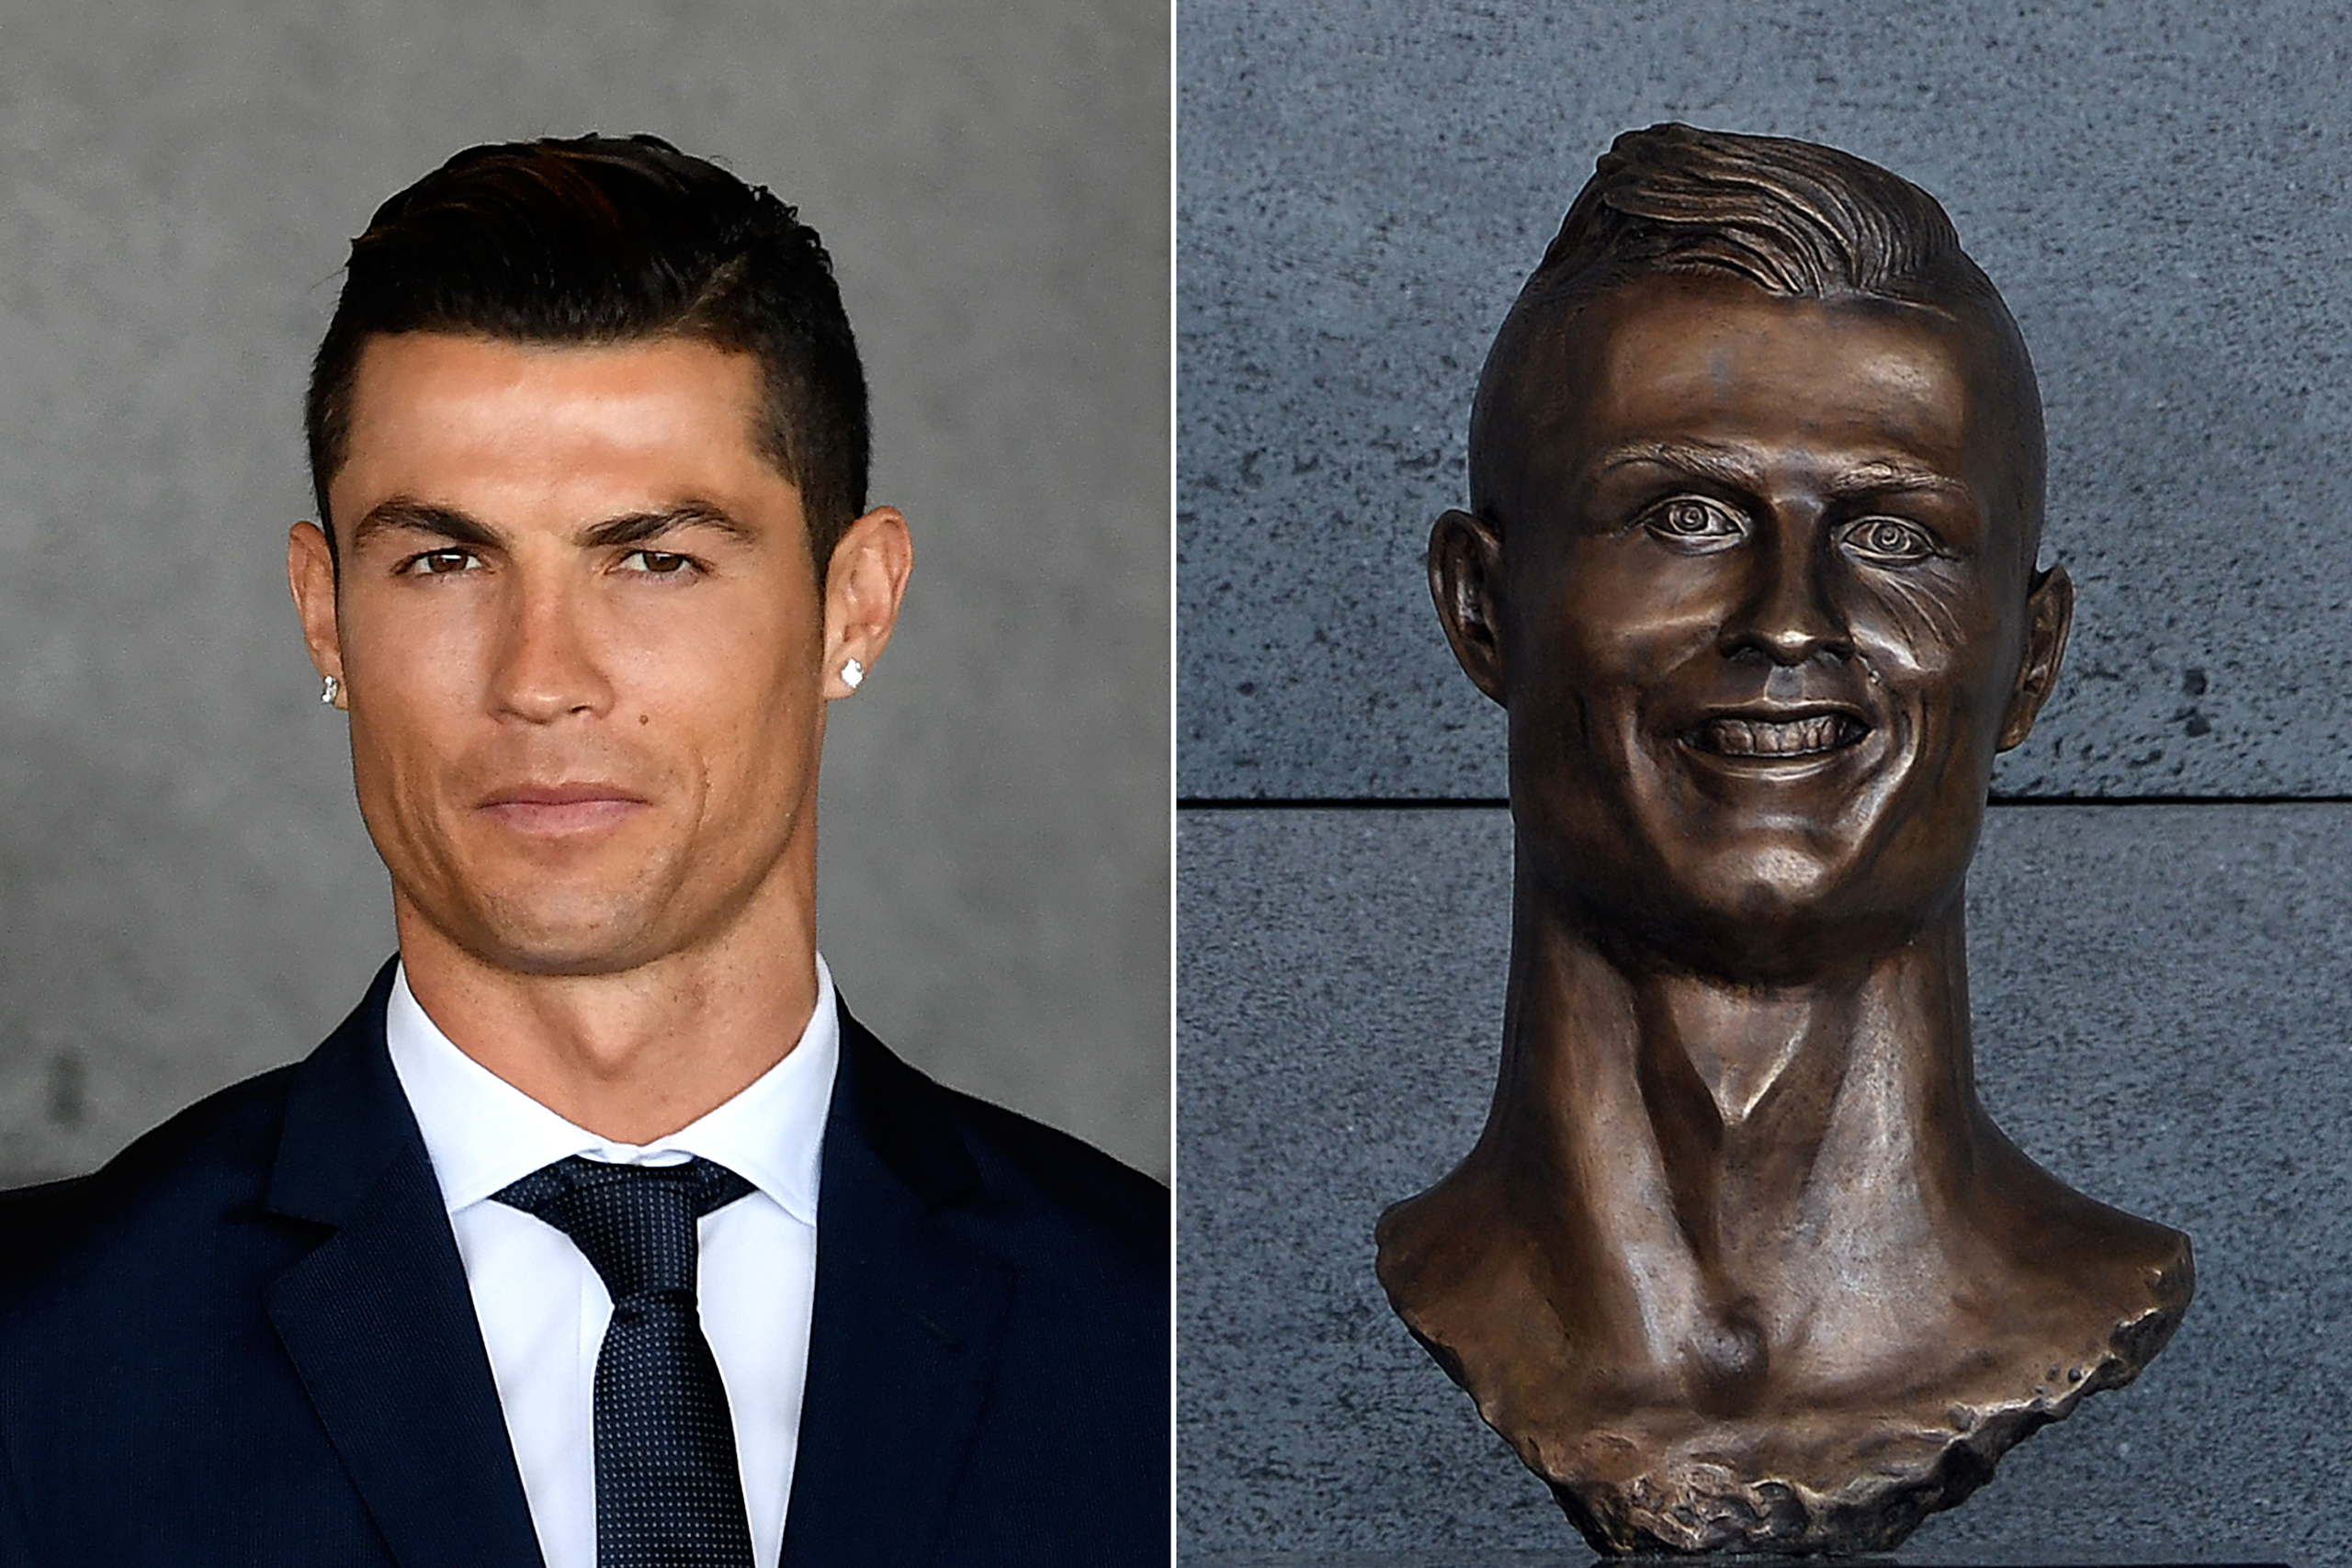 Portuguese footballer Cristiano Ronaldo stands near a bust of his likeness during a ceremony to rename Madeira's airport after him on March 29, 2017. Right: The bust that was revealed.